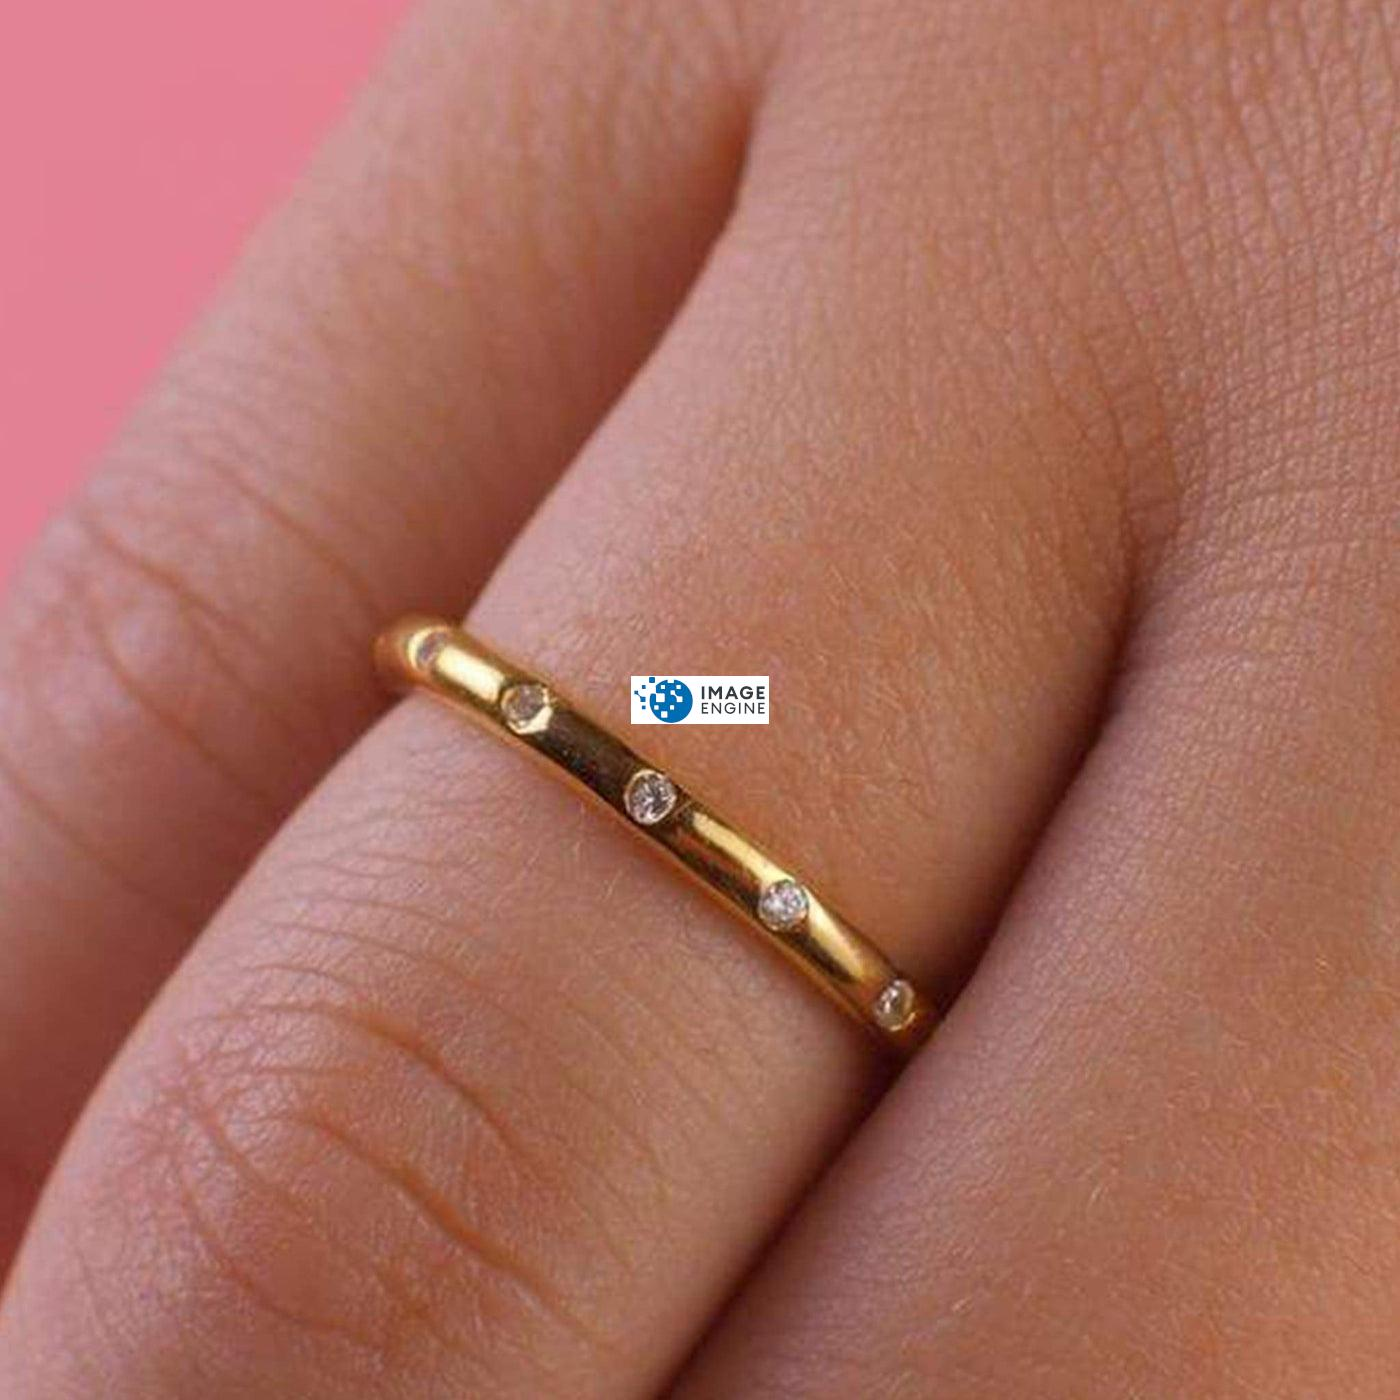 Droplet Ring - Zoomed View while Wearing Ring - 18K Yellow Gold Vermeil